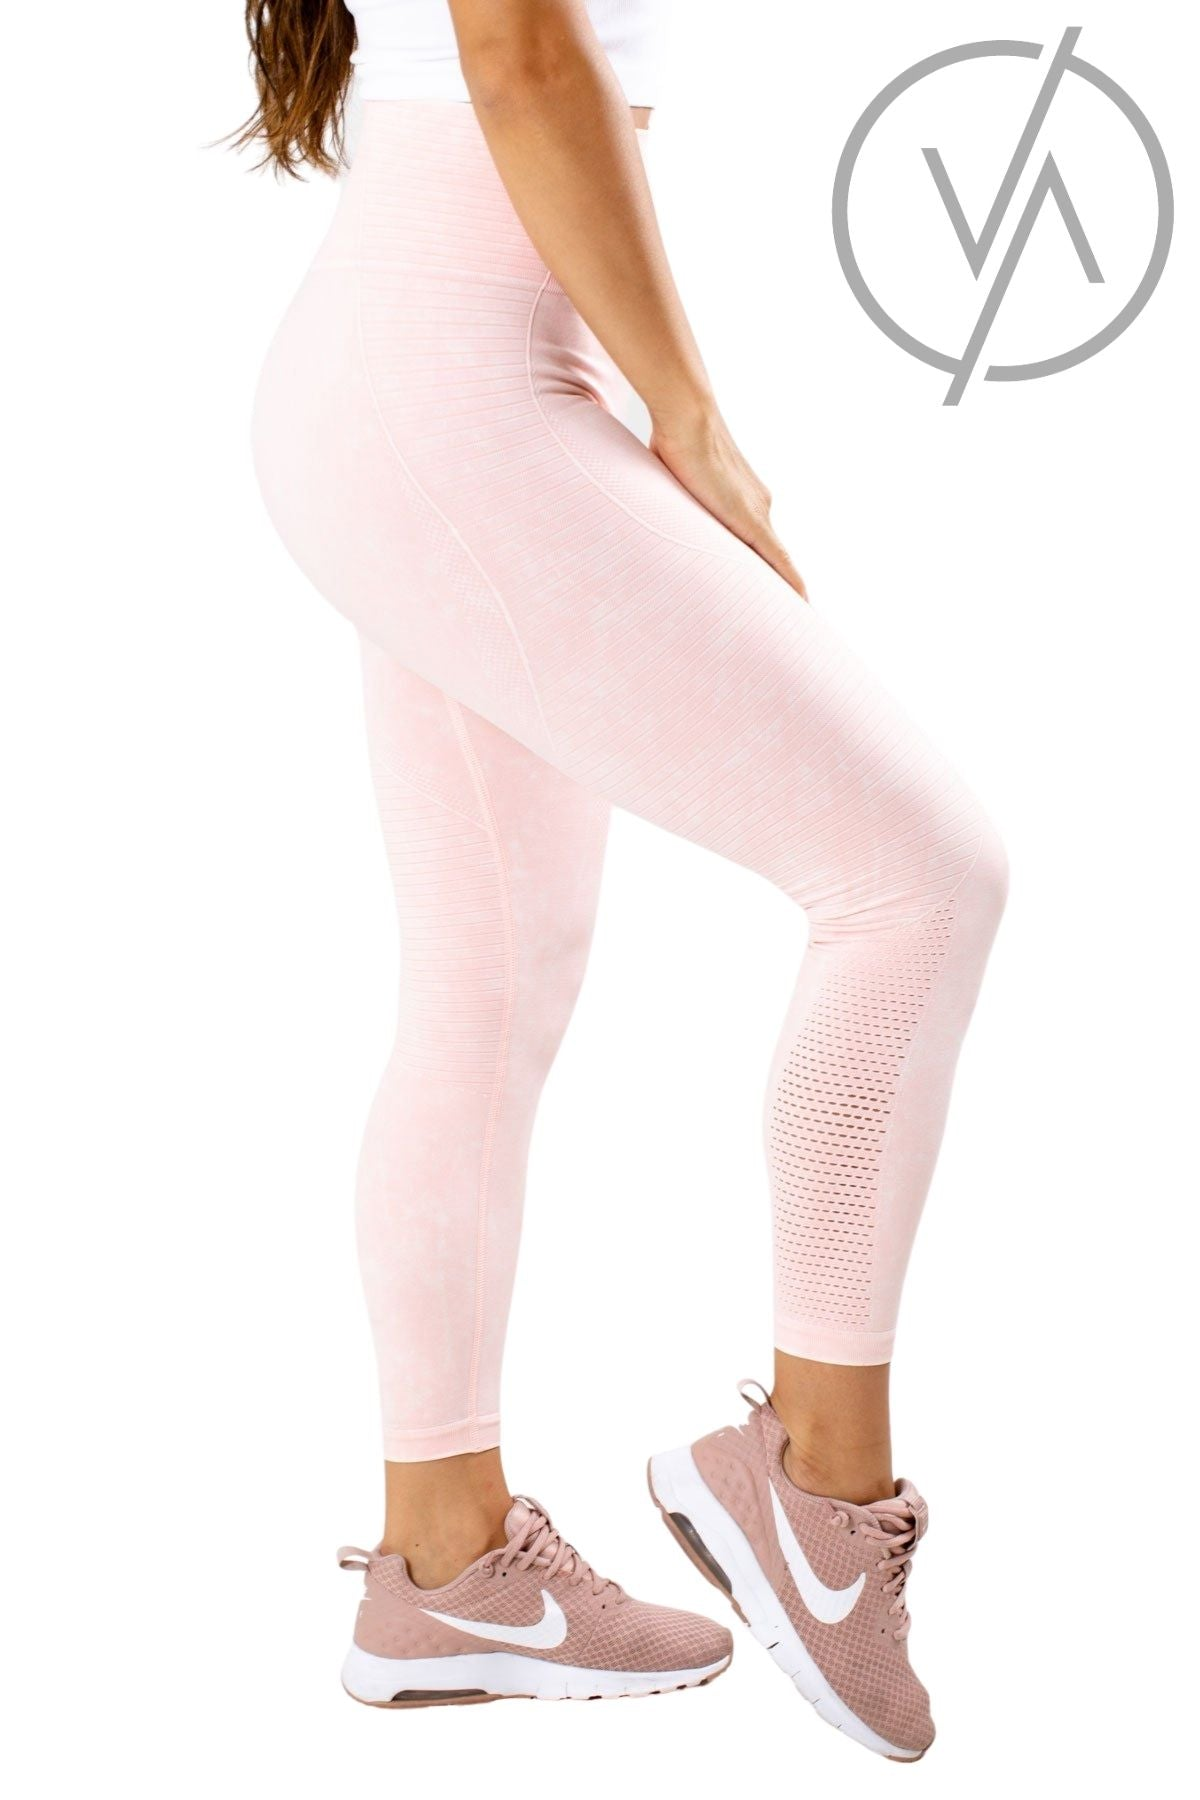 Mineral Wash Pink Athletic Leggings for Women